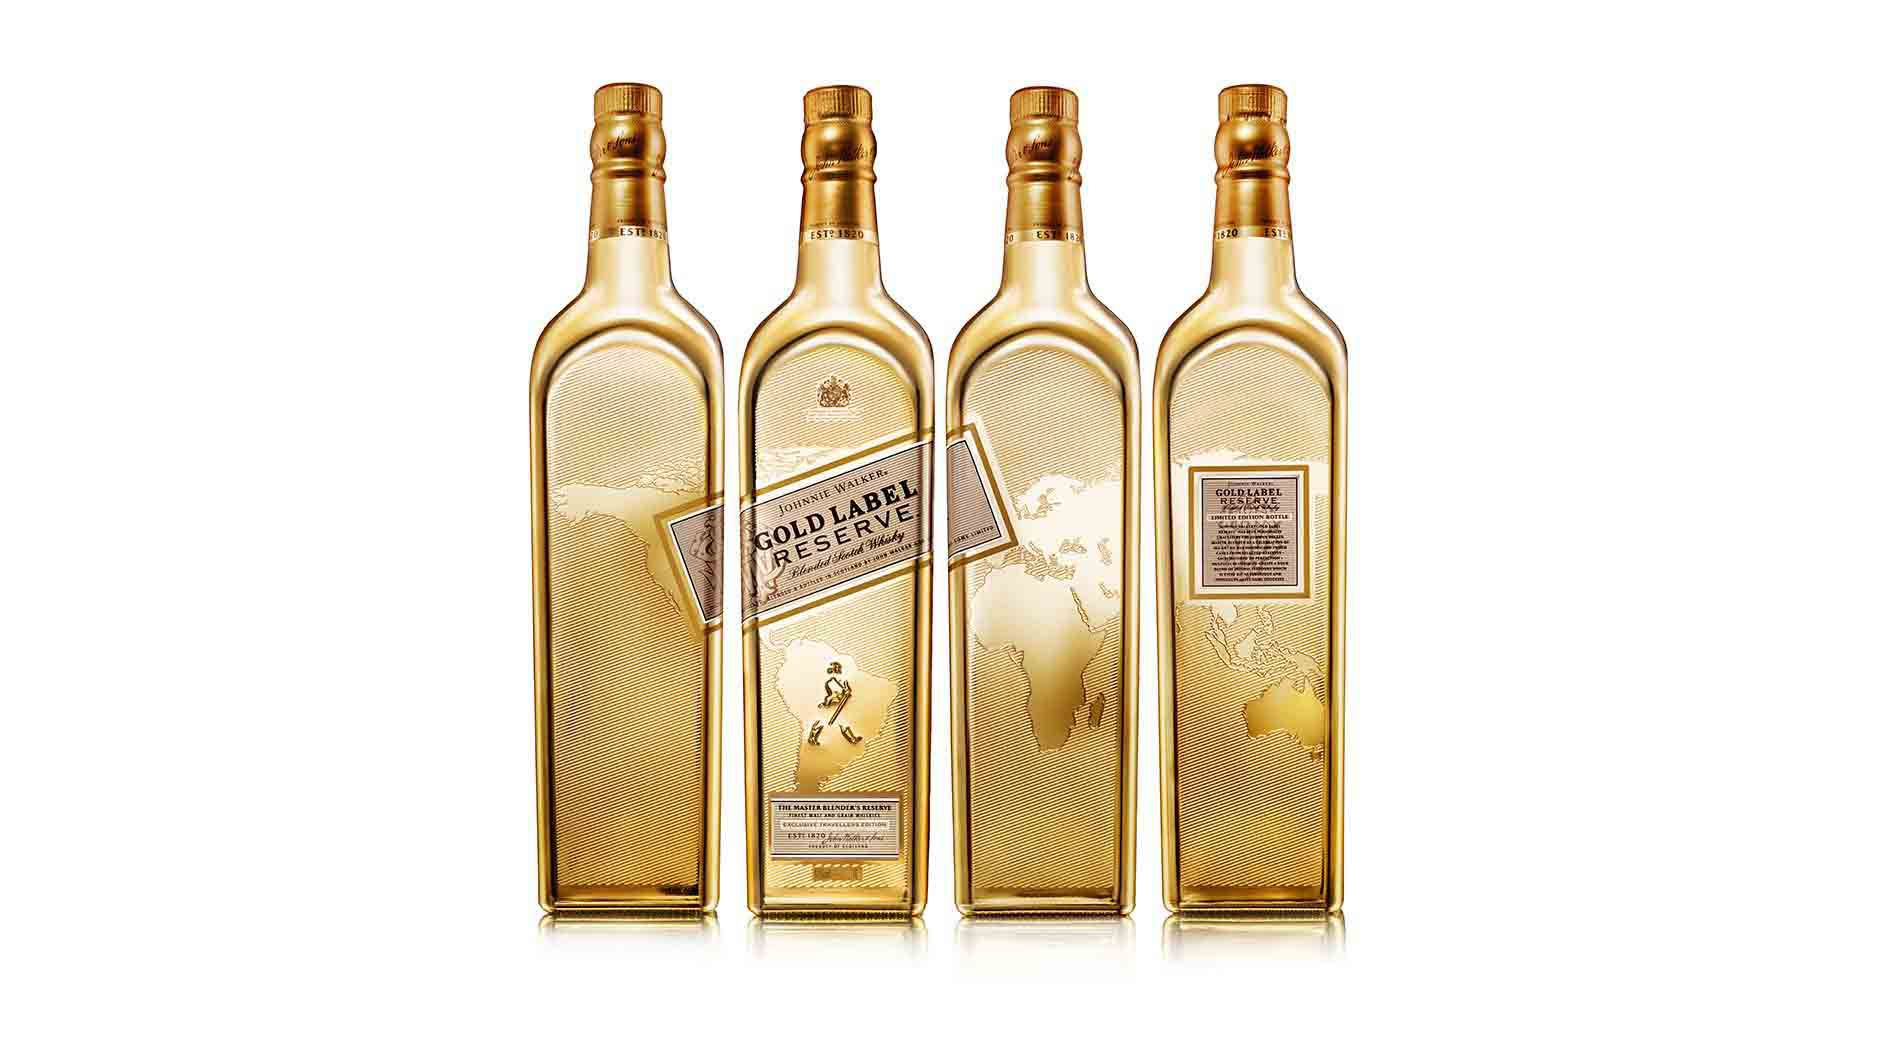 Four sides of Johnnie Walker Gold Label Reserve Limited Edition whisky bottle